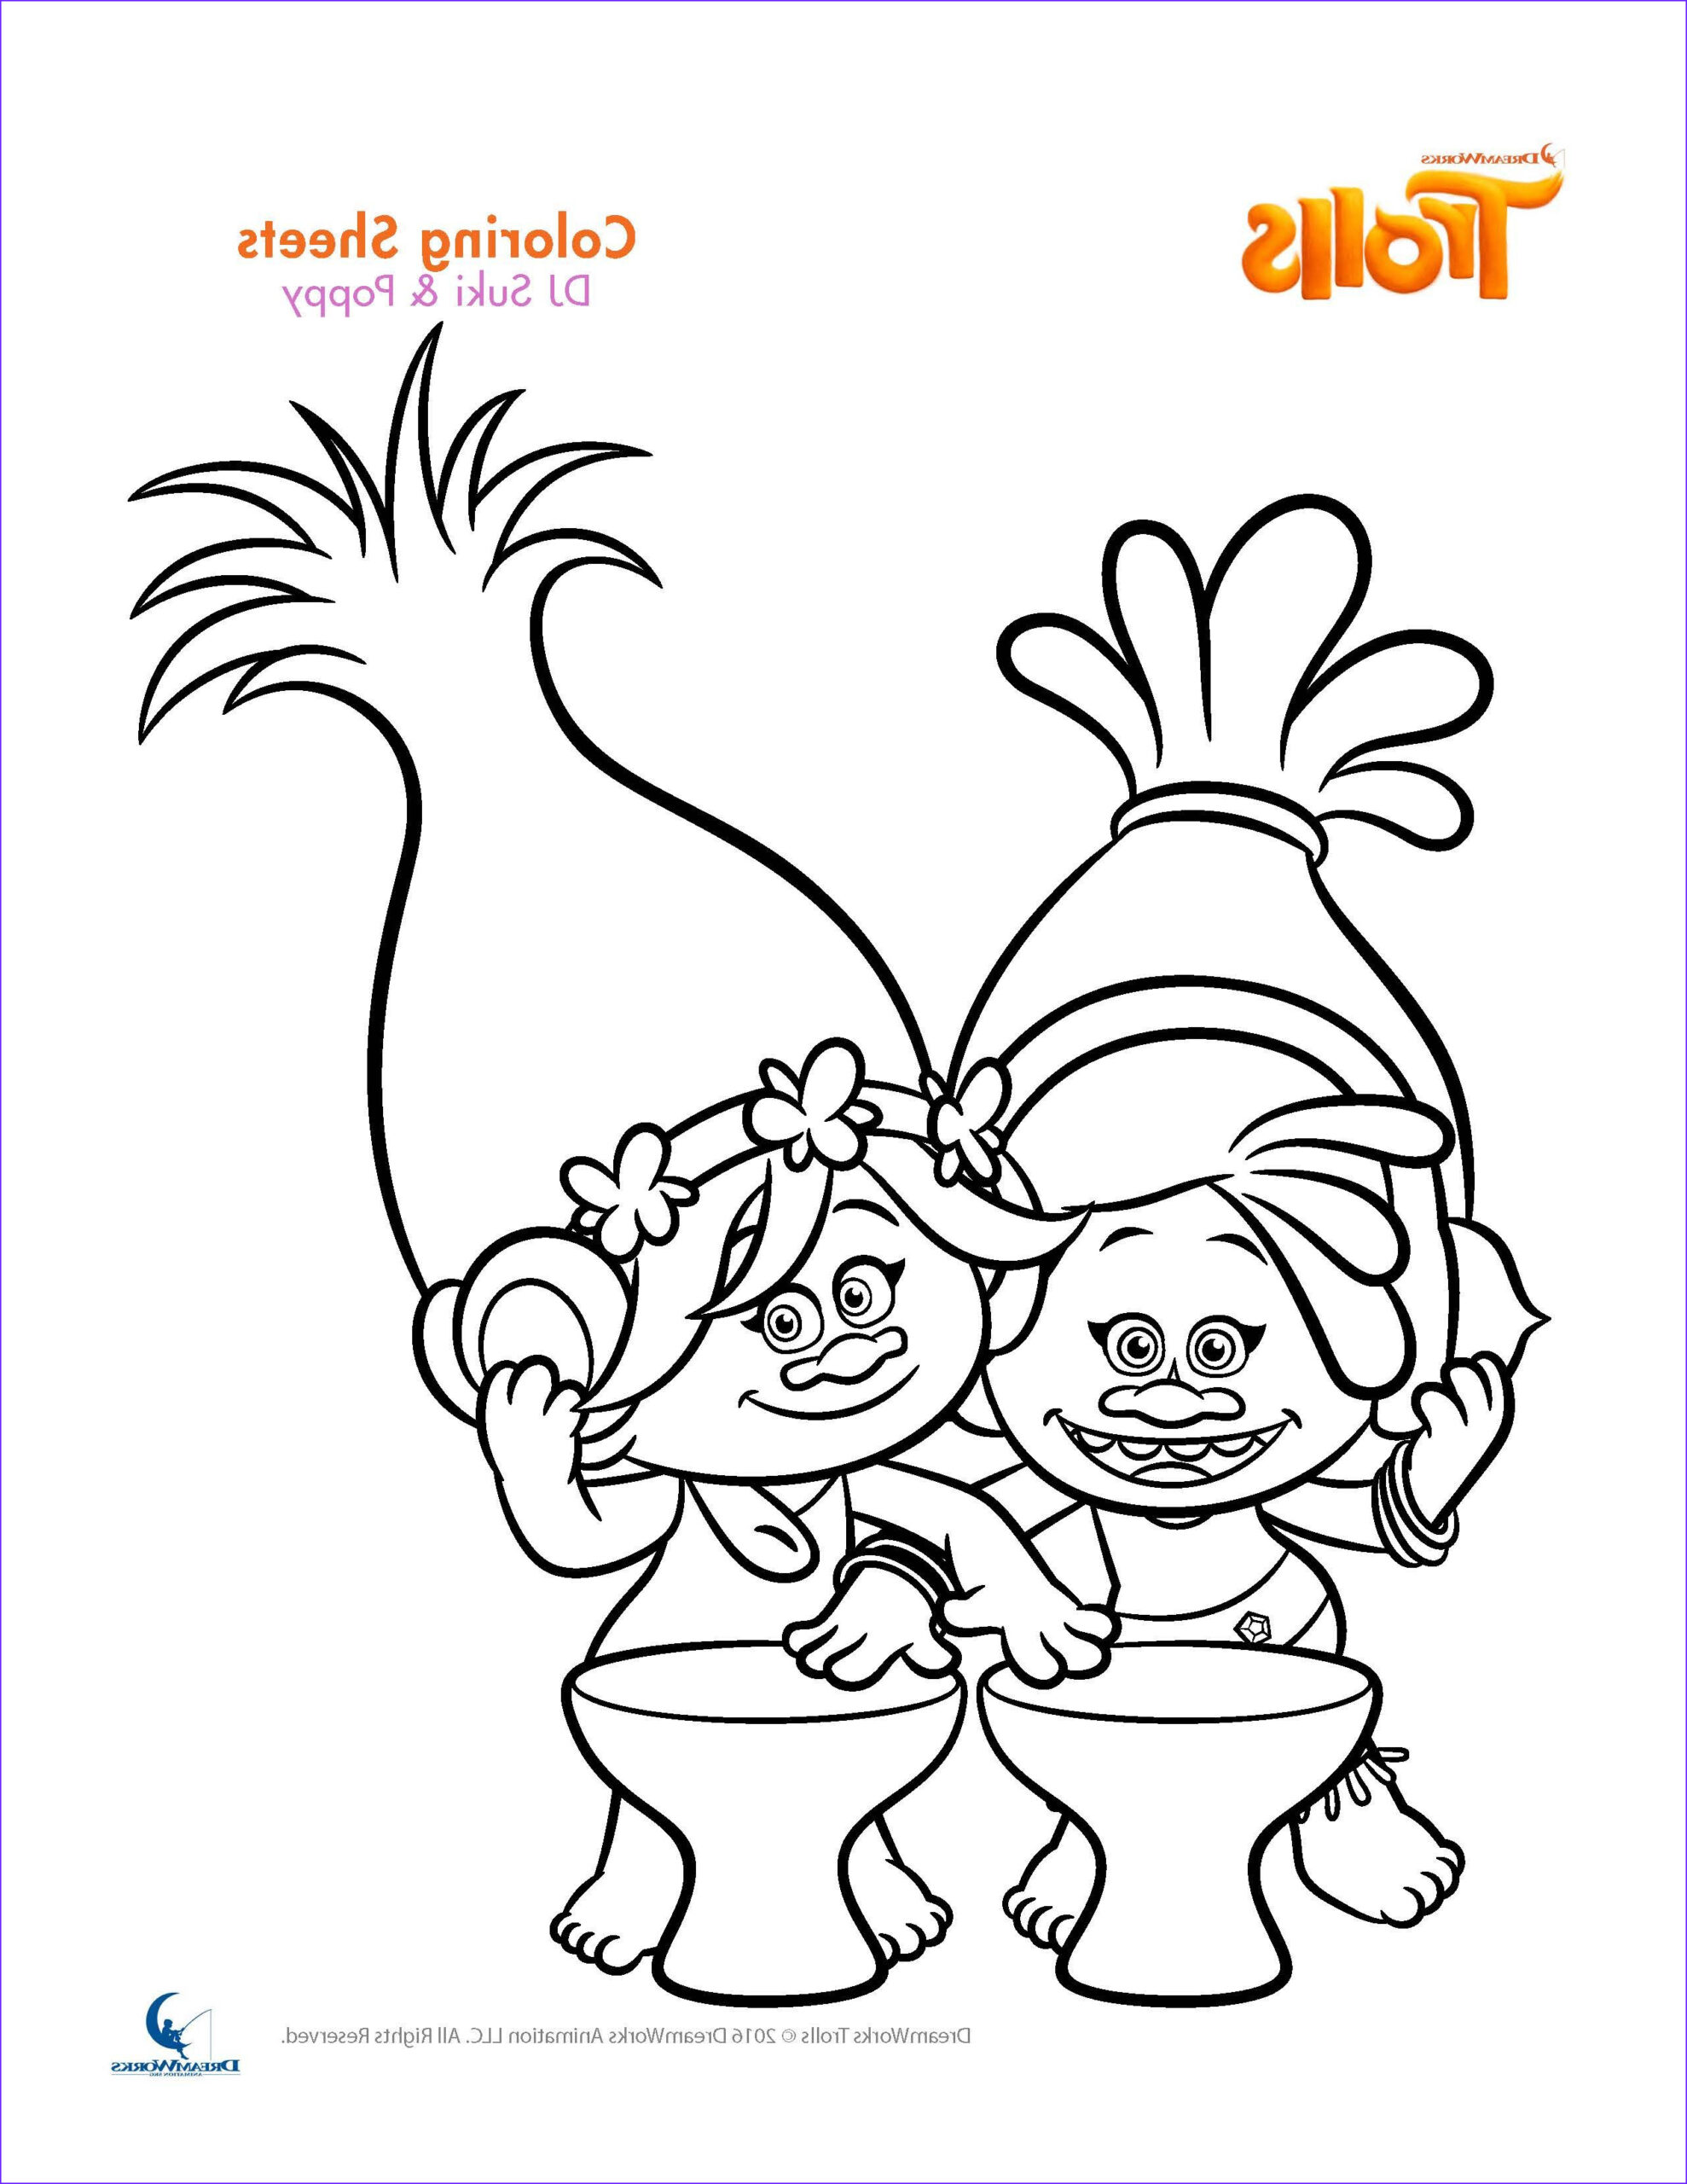 Trolls Coloring Book Luxury Stock Trolls Coloring Sheets and Printable Activity Sheets